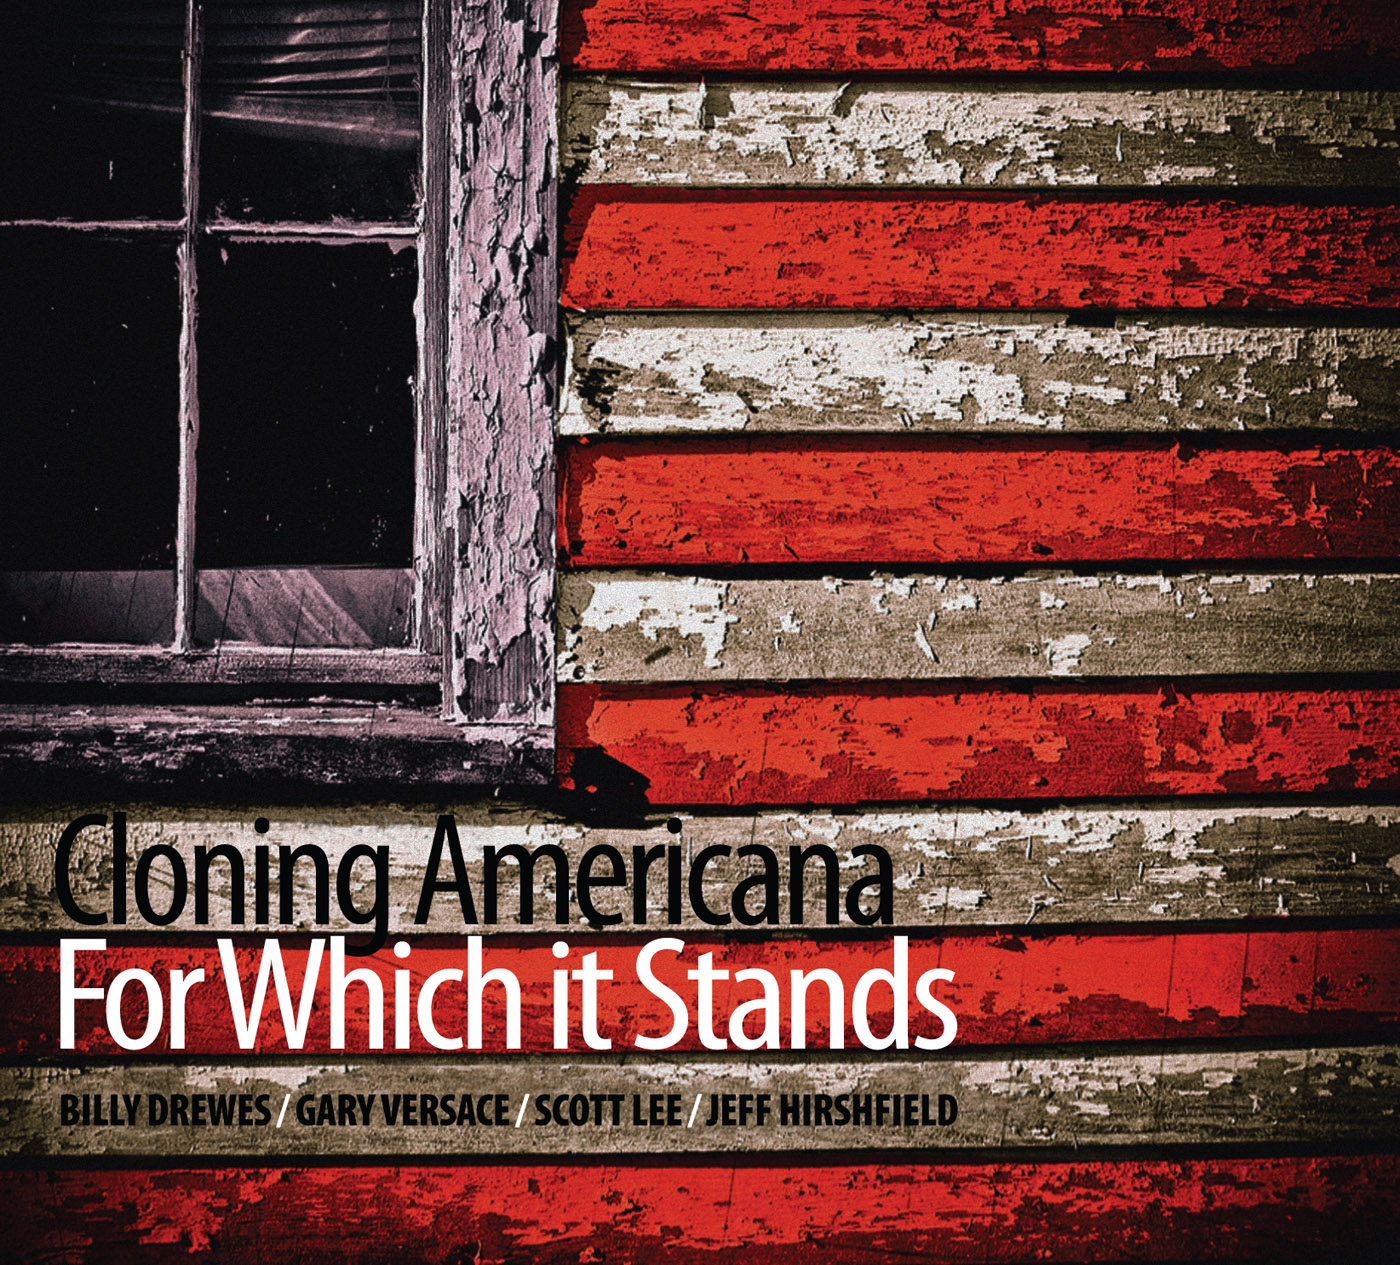 For Which it Stands by Cloning Americana cover